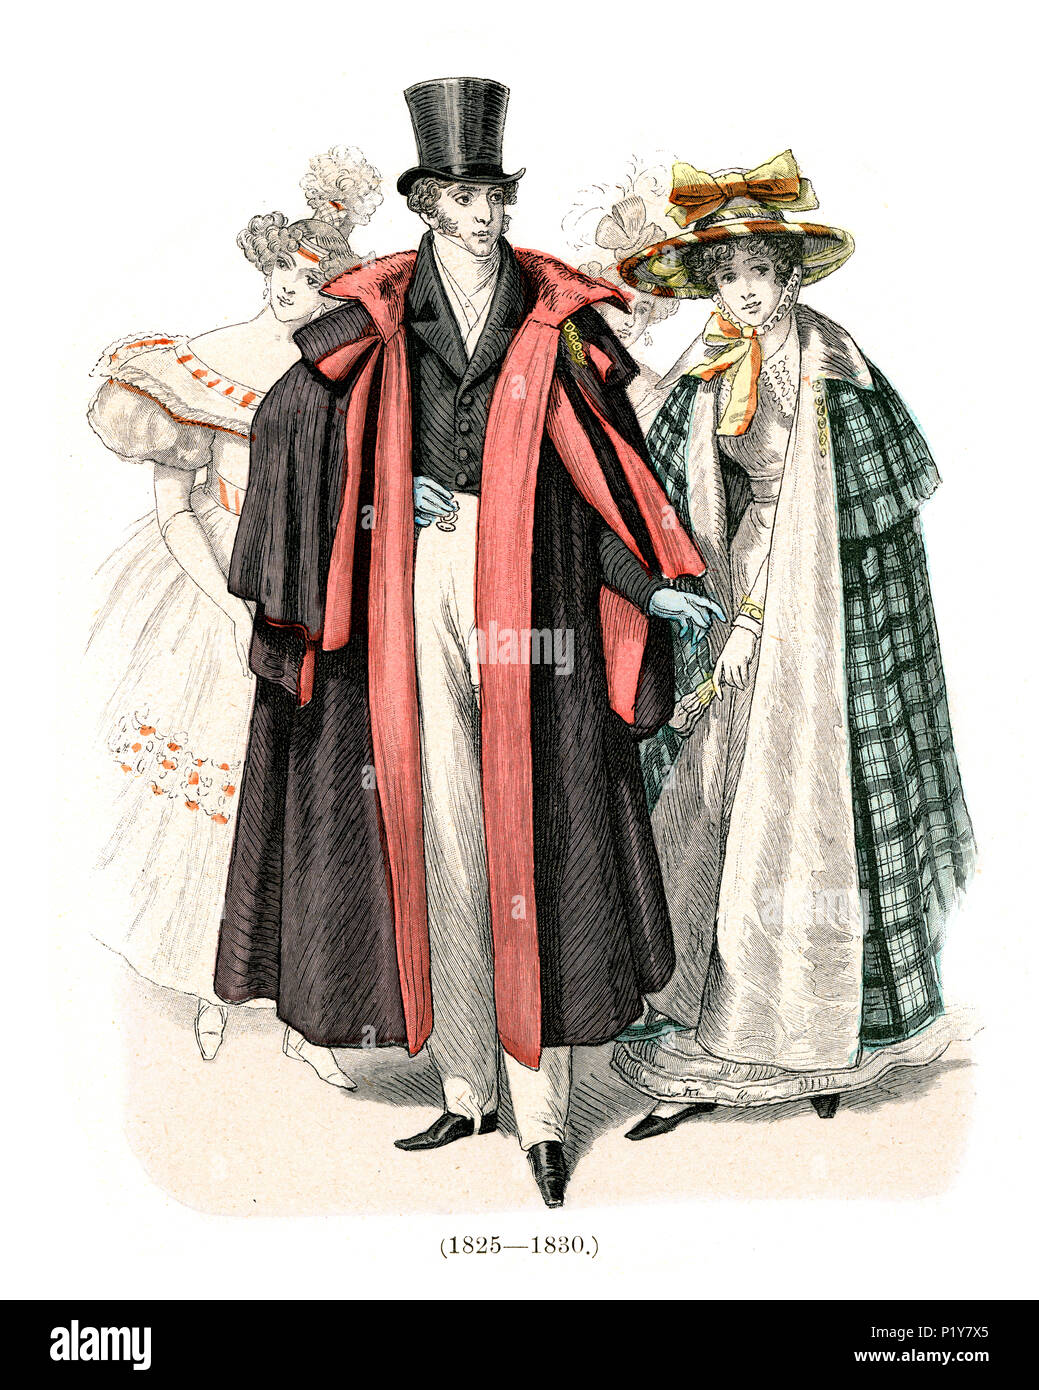 Vintage engraving of History of Fashion, Costumes of Germany early 19th Century.  High society man in cape and top hat, women in hat and cloak 1825 to - Stock Image